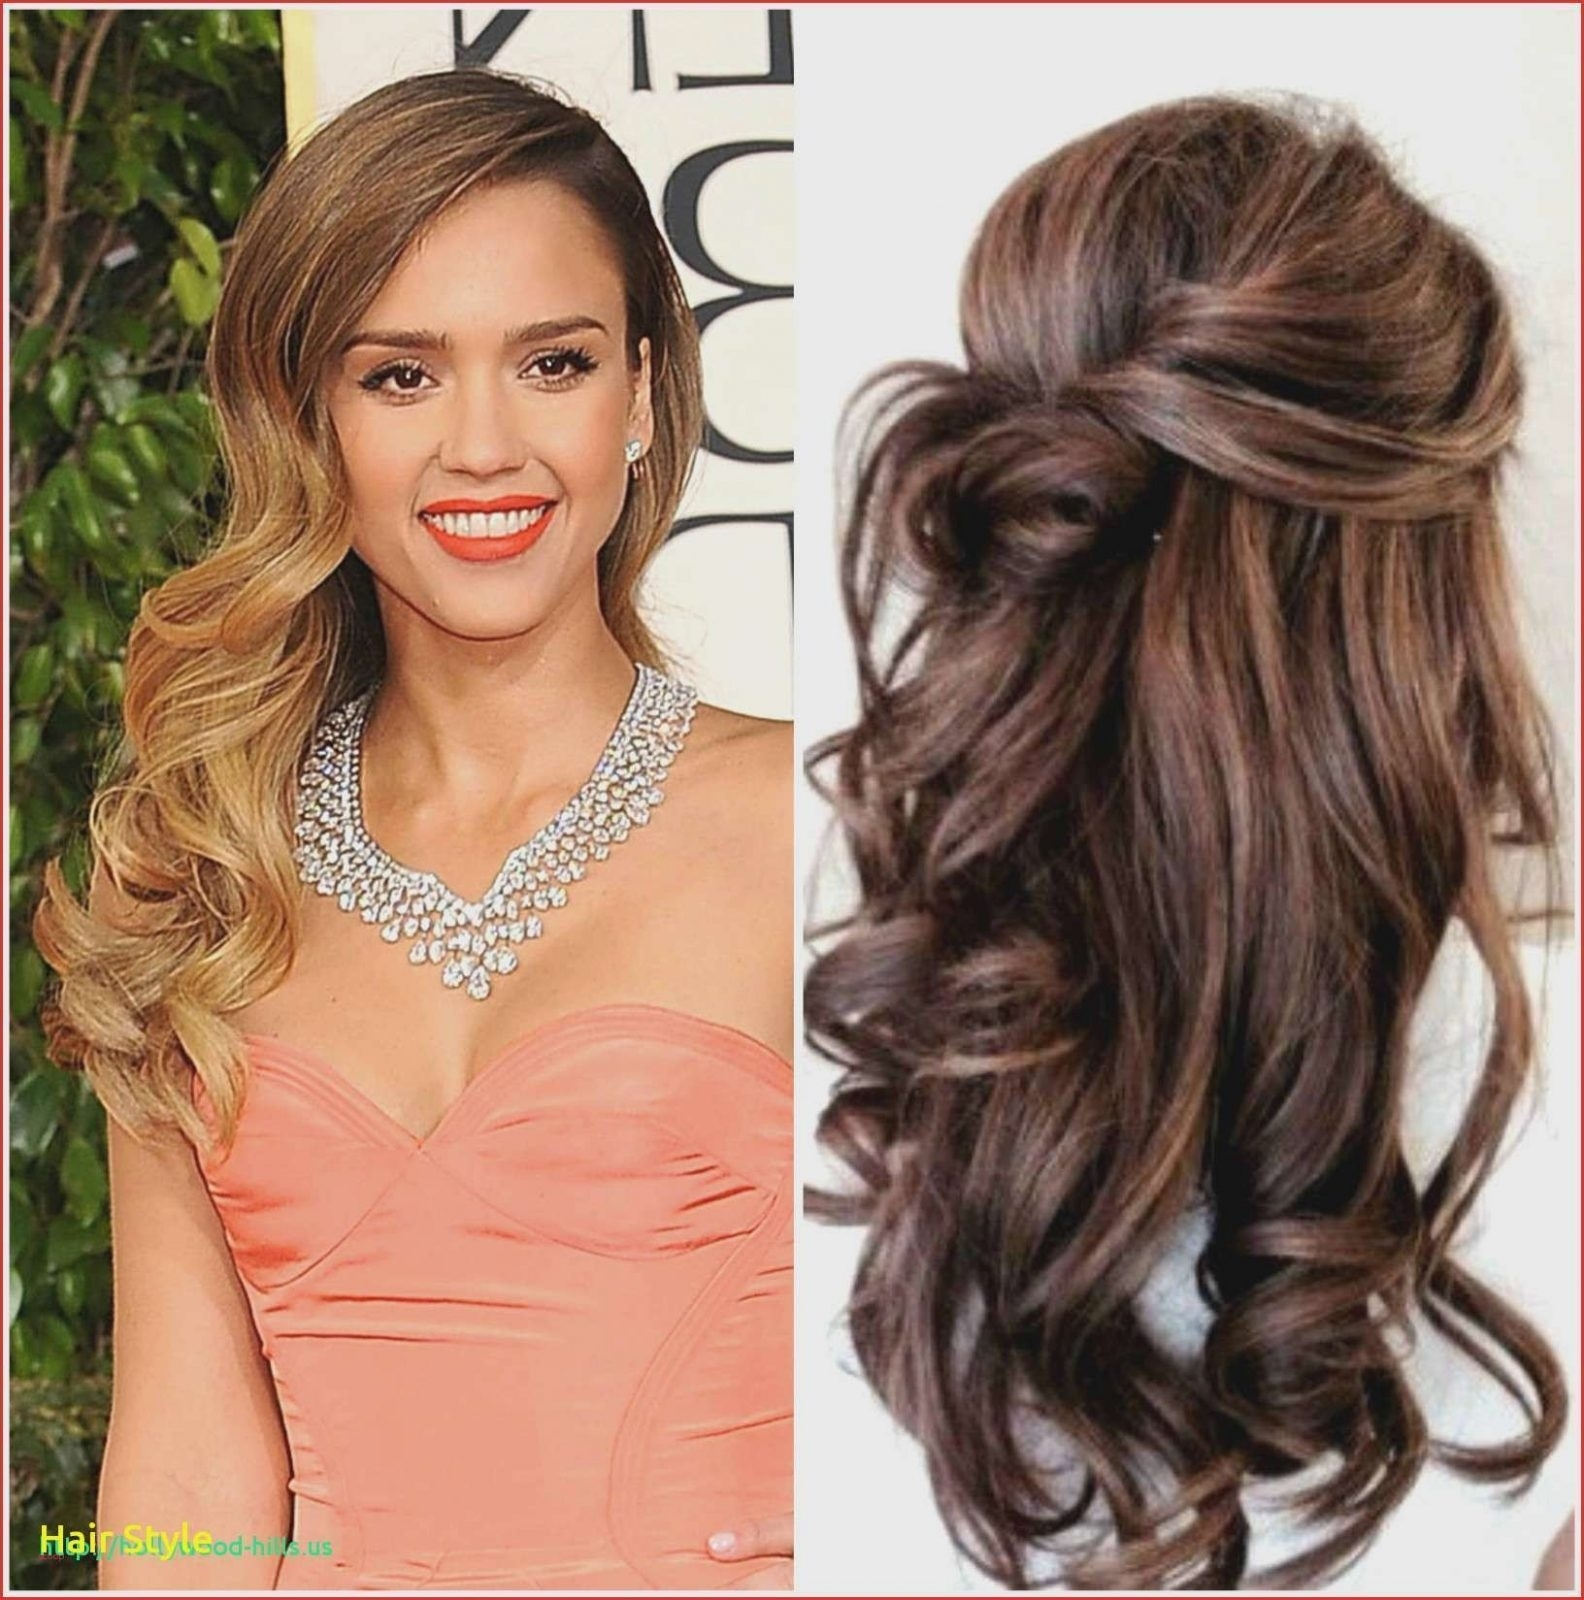 Asian Wedding Hairstyles For Long Hair Awesome Asian Wedding throughout Asian Wedding Hairstyles For Long Hair